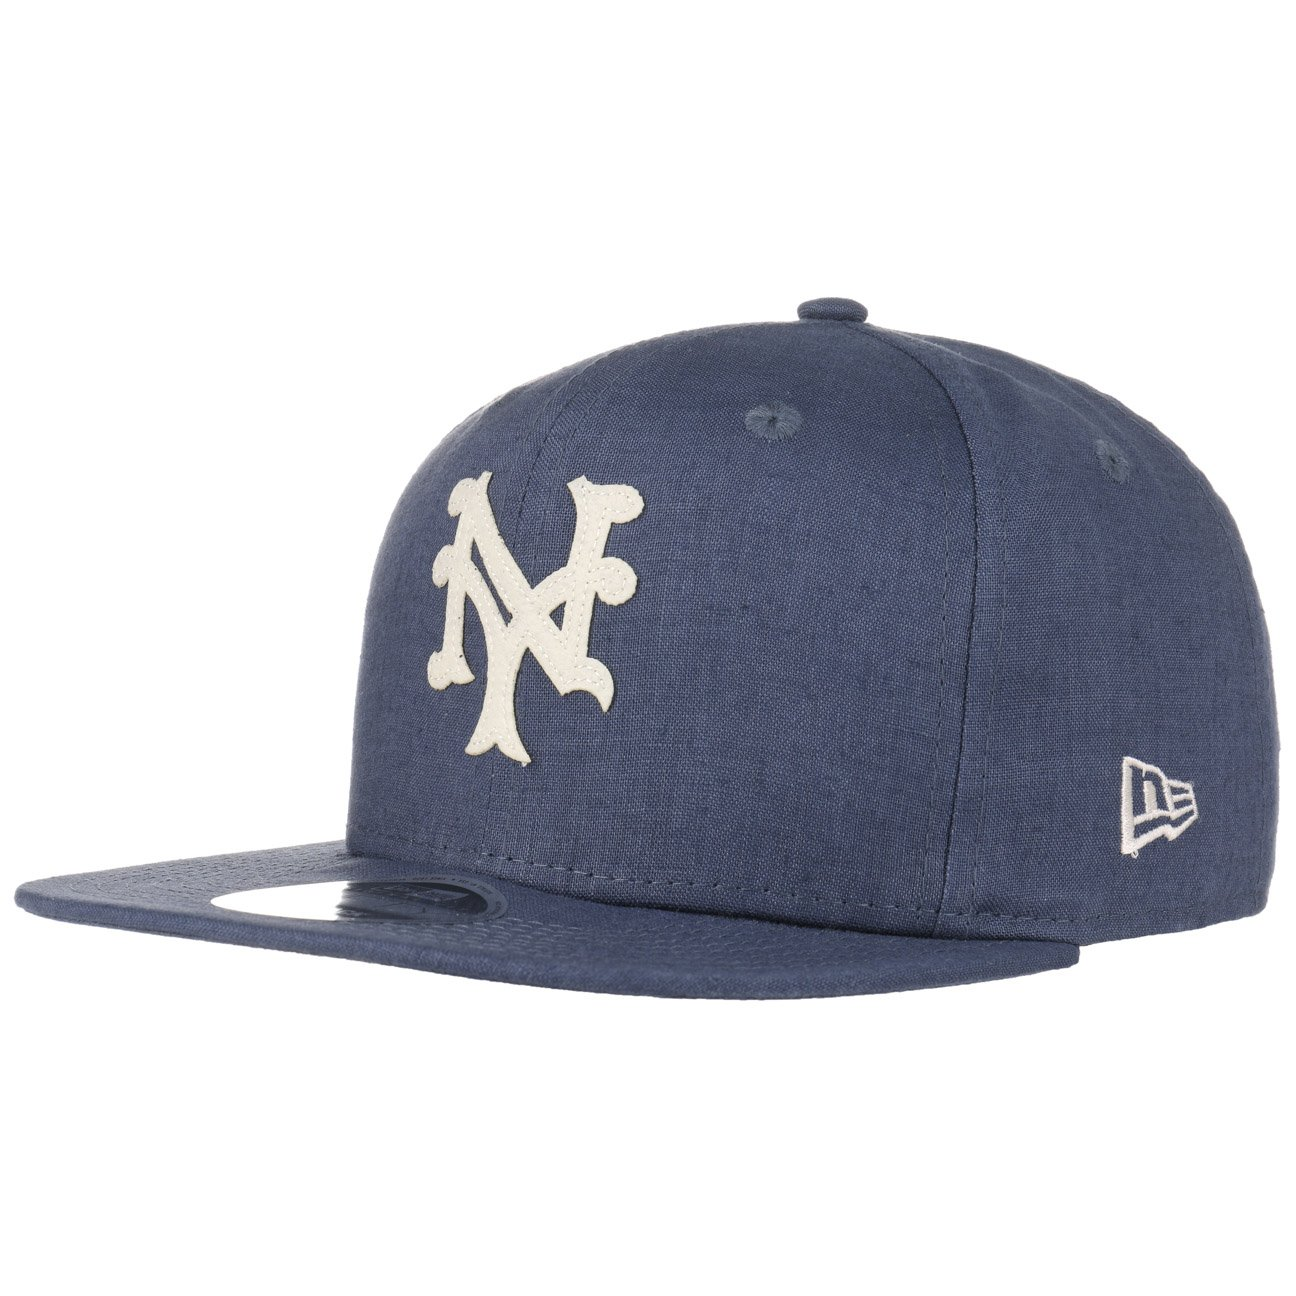 size 40 da730 ffc2b inexpensive amazon new era 9fifty mlb new york mets linen felt strapback cap  s m clothing d3978